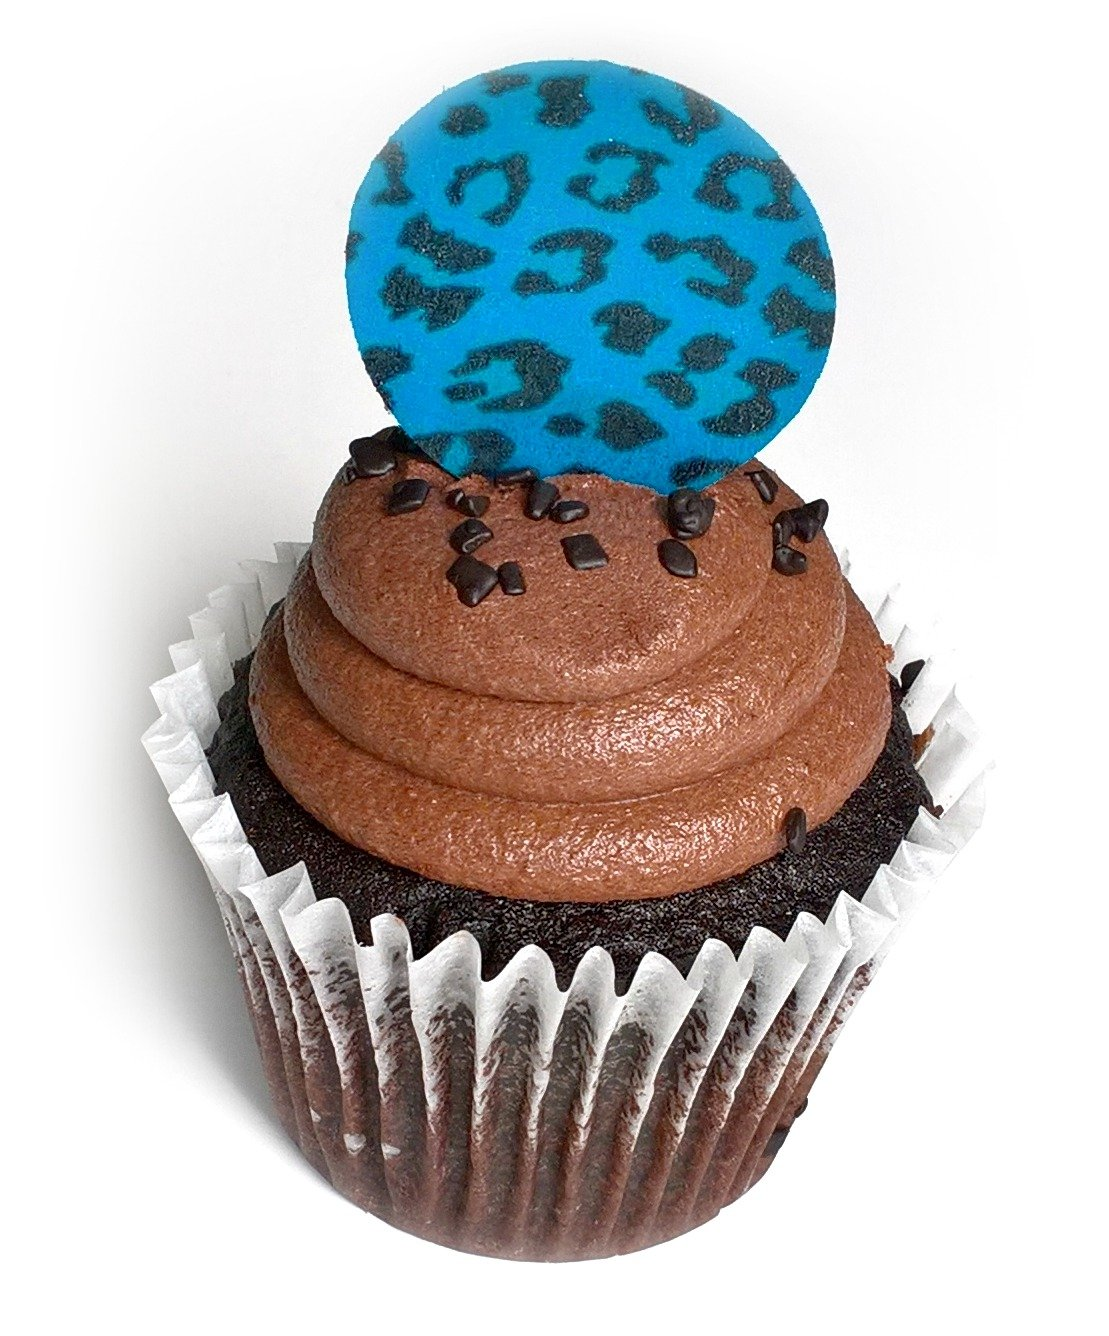 Teal Blue Cheetah Leopard Animal Print Wafer Paper Toppers 1.5 Inch for Decorating Desserts Cupcakes Pack of 12